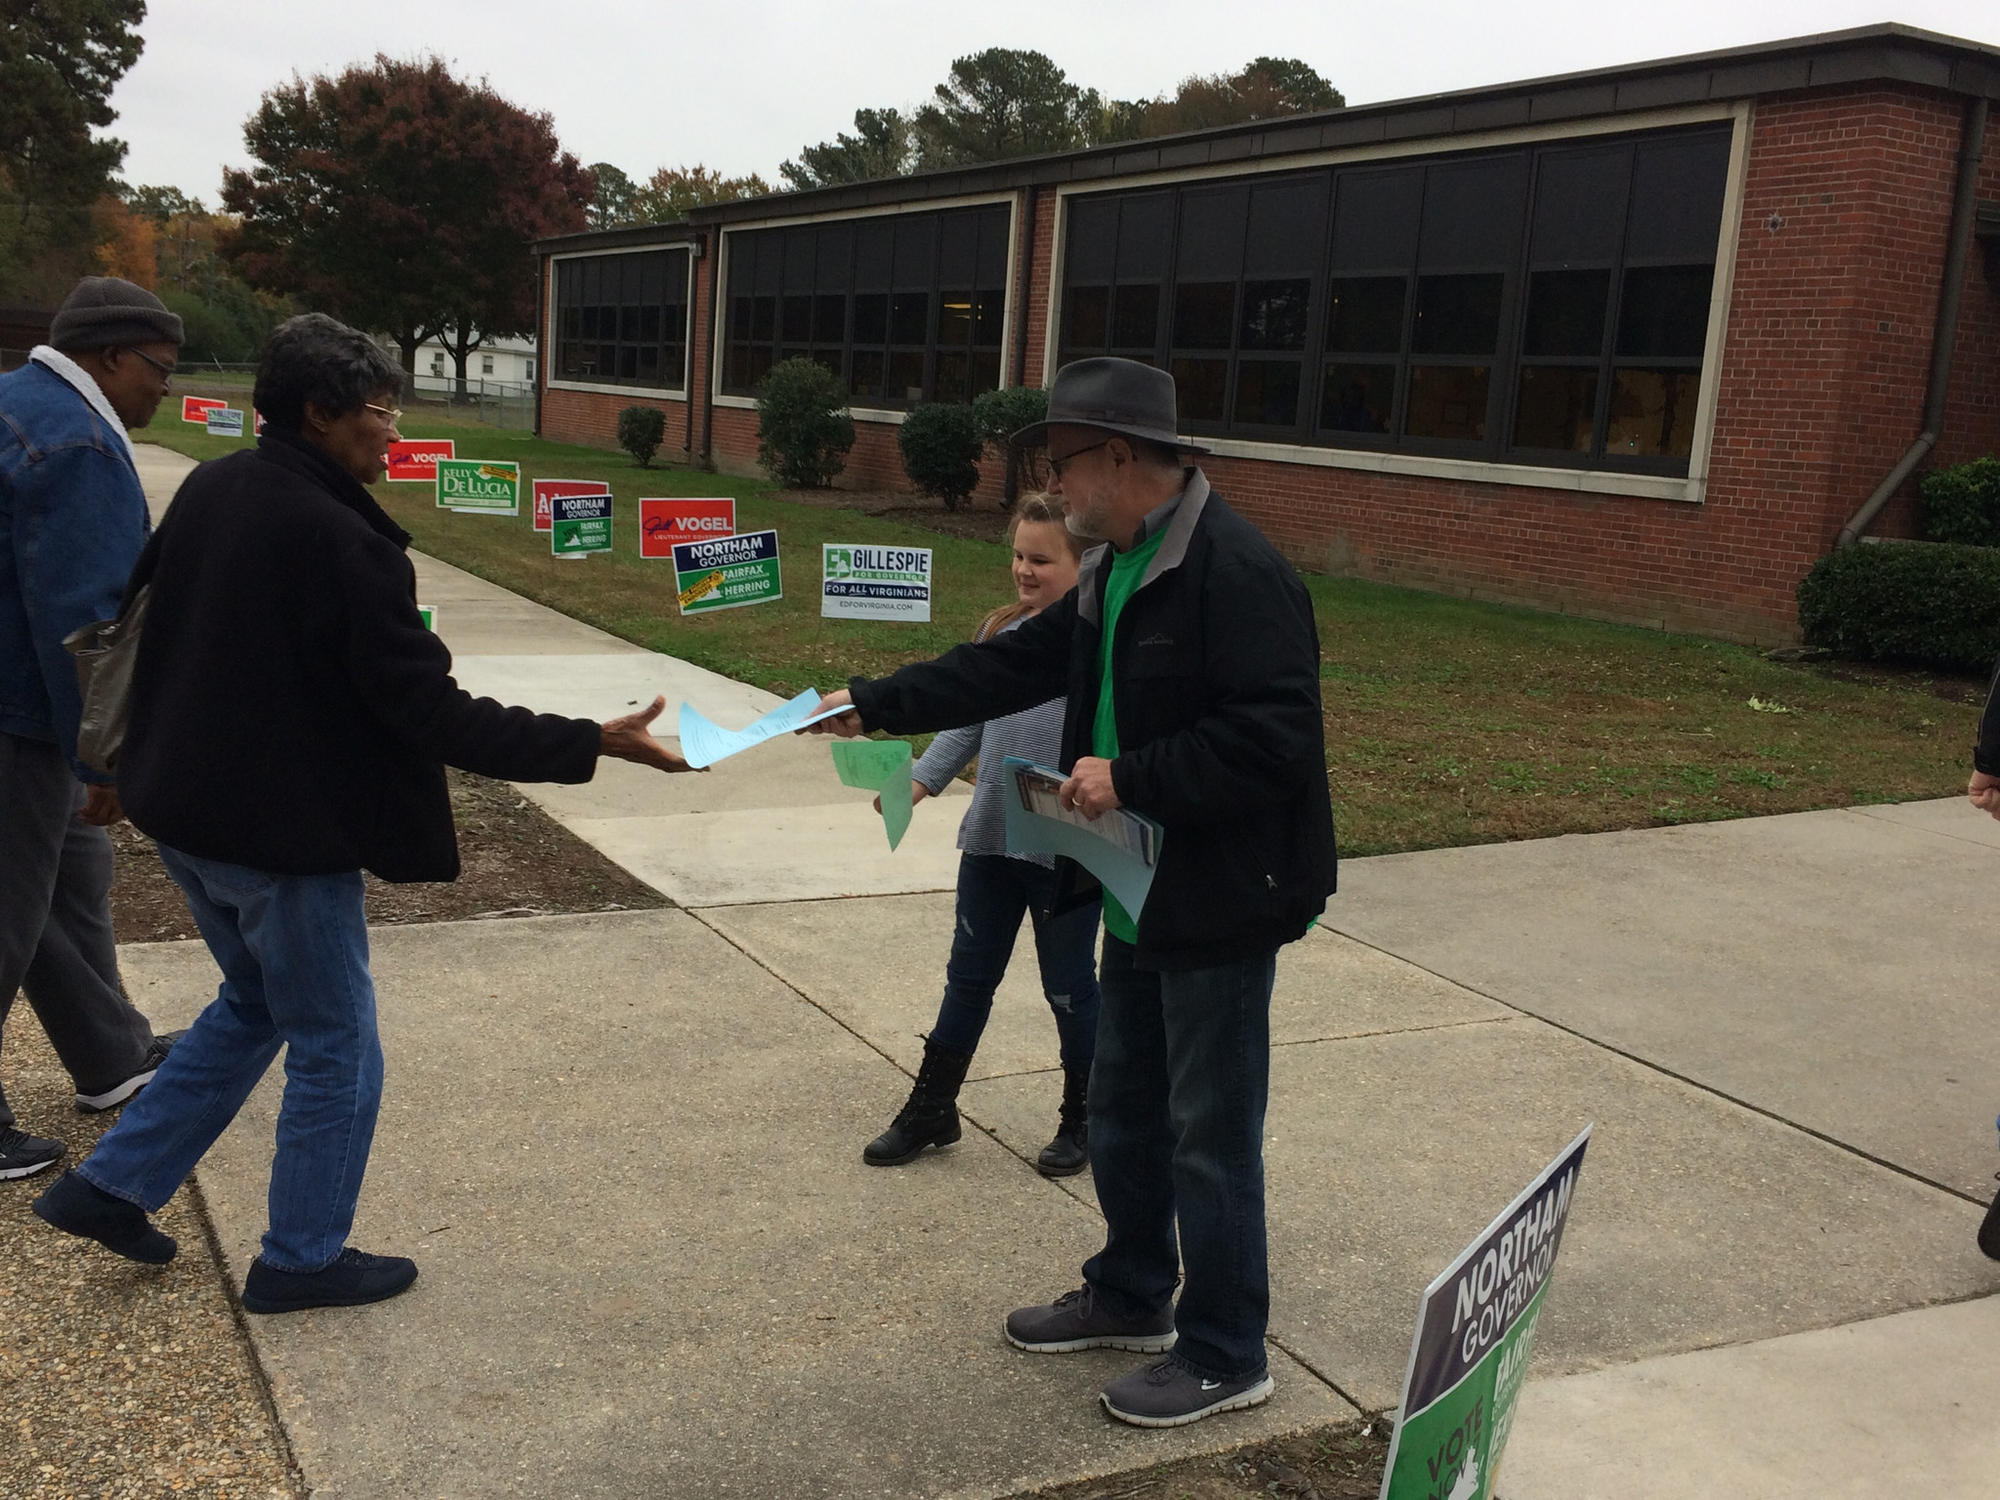 "<p>Chris Mayer, chair of the York-Poquoson Democratic Committee, says turnout in Dem. leaning Magruder precinct has been good and turnout at a GOP leaning precinct he went this morning was not, so he's ""feeling pretty good.""</p>"